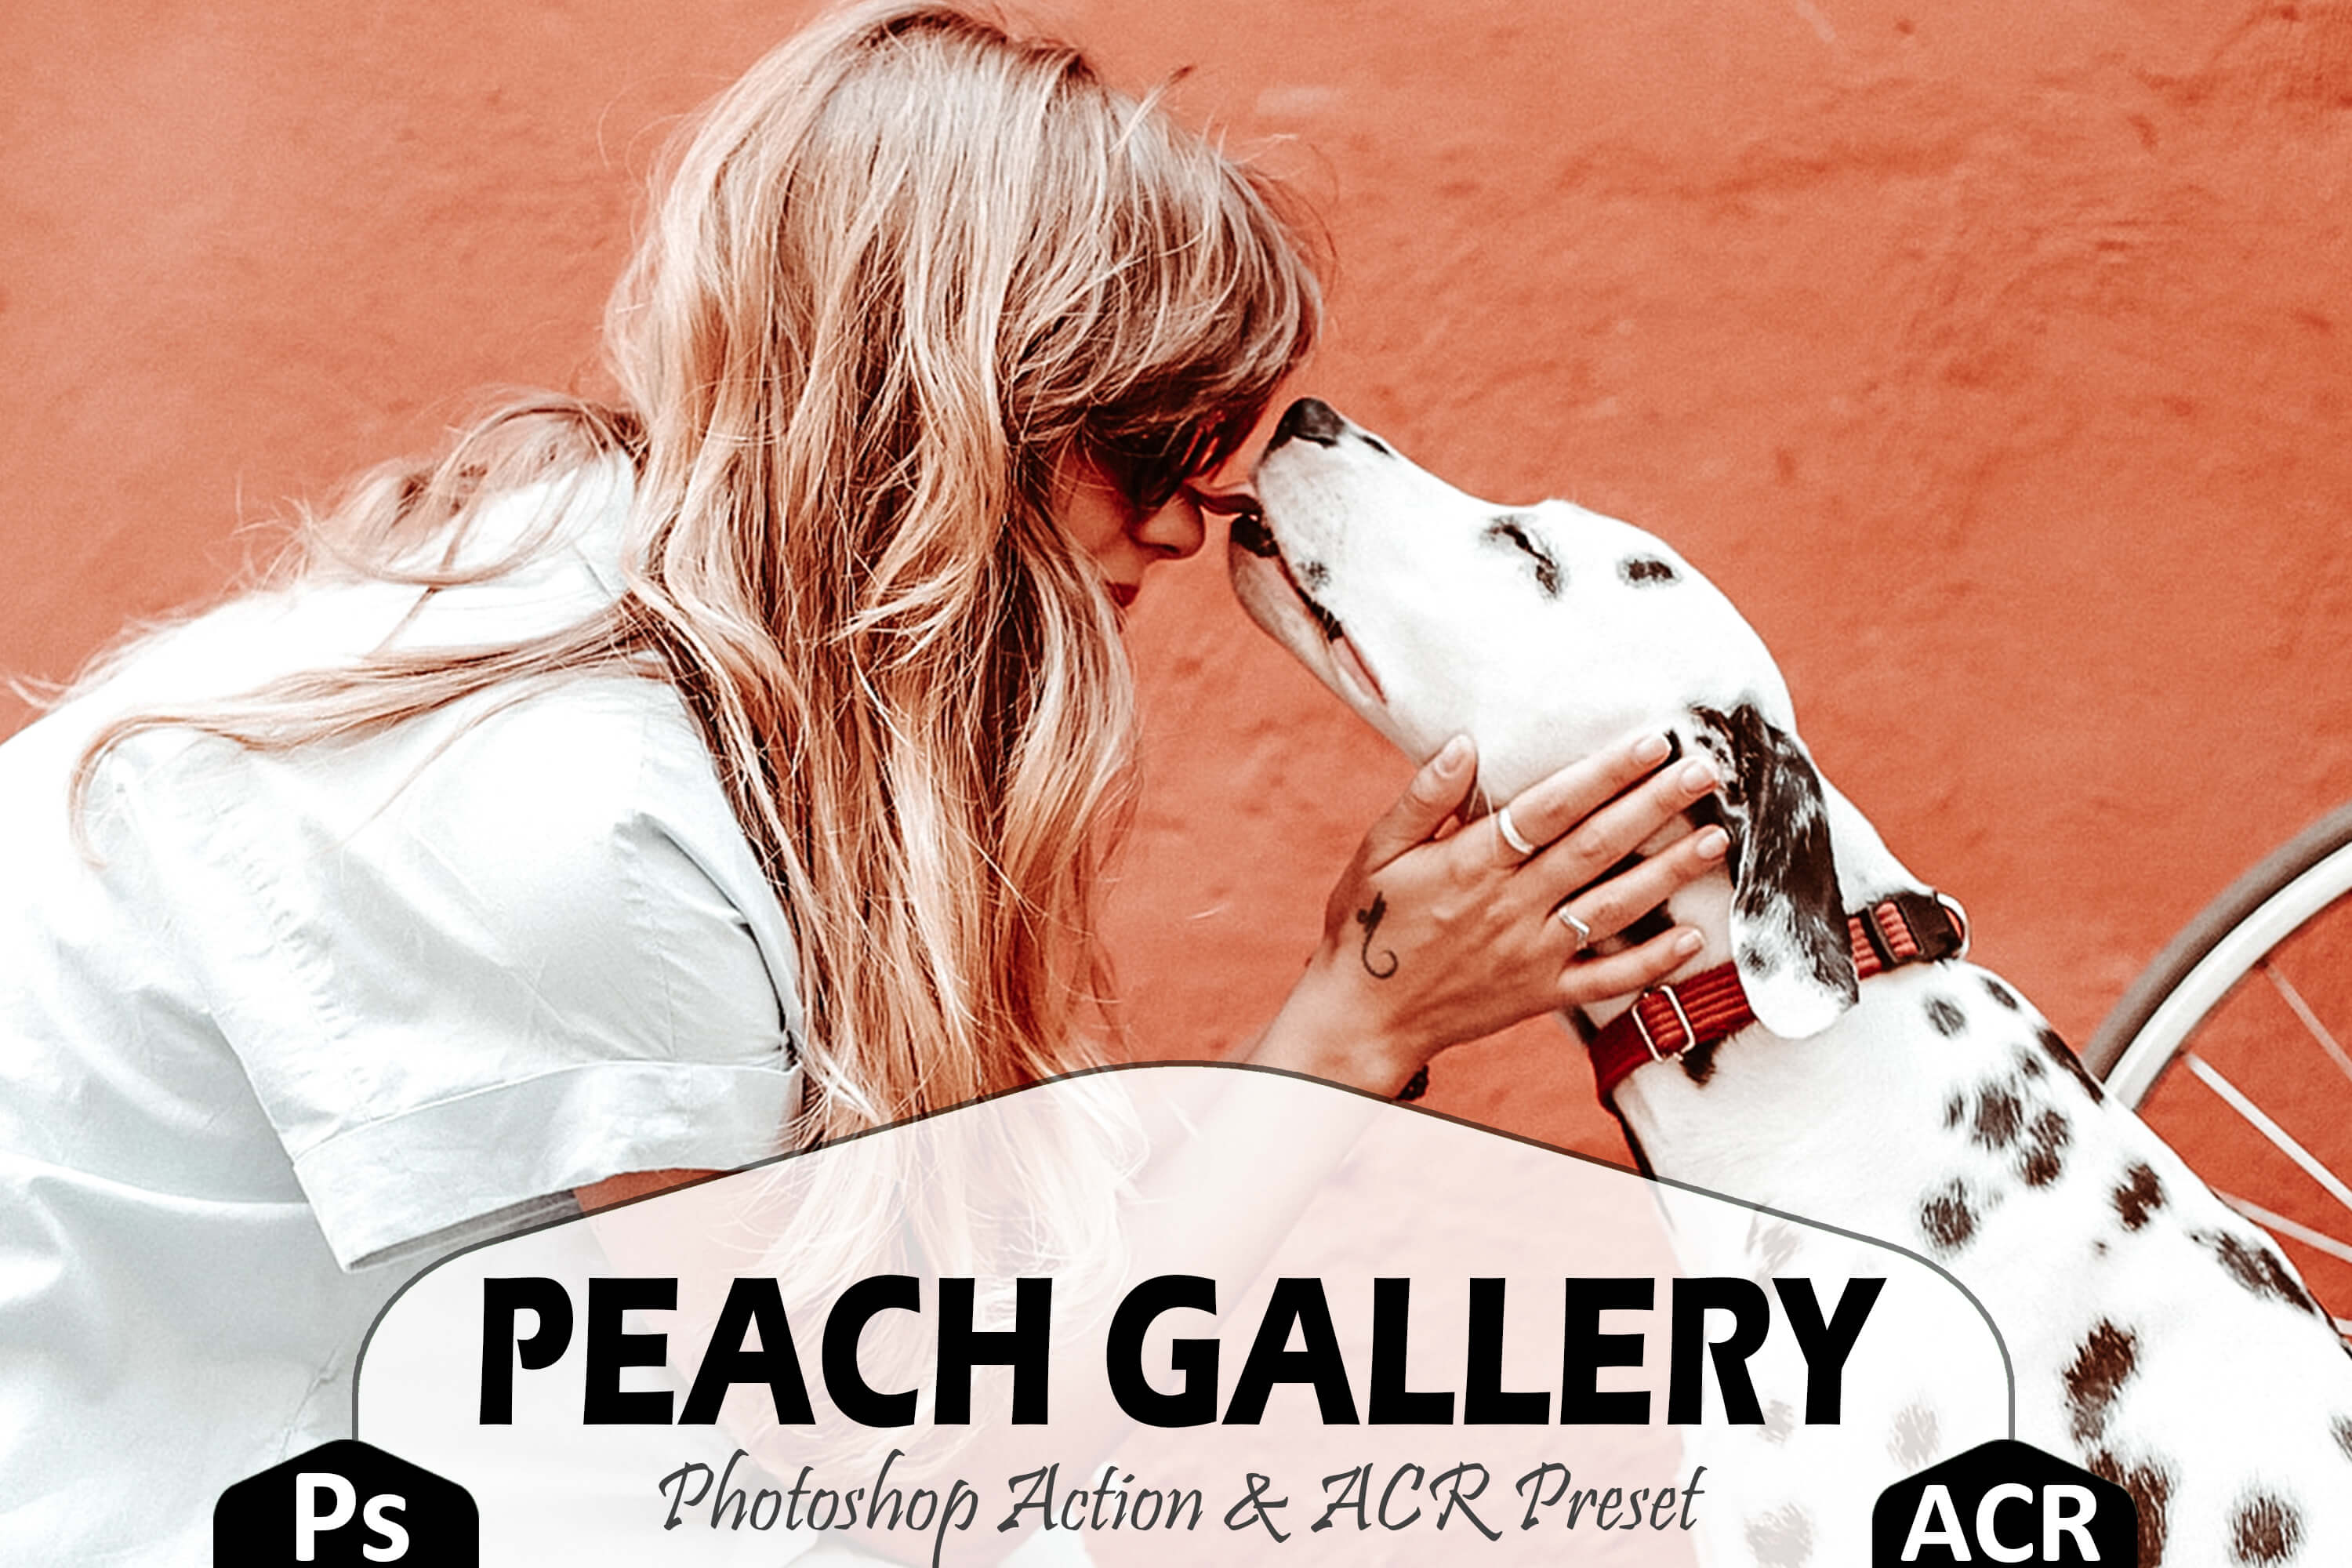 Download Free 10 Peach Gallery Photoshop Actions Graphic By Mattte Studio for Cricut Explore, Silhouette and other cutting machines.